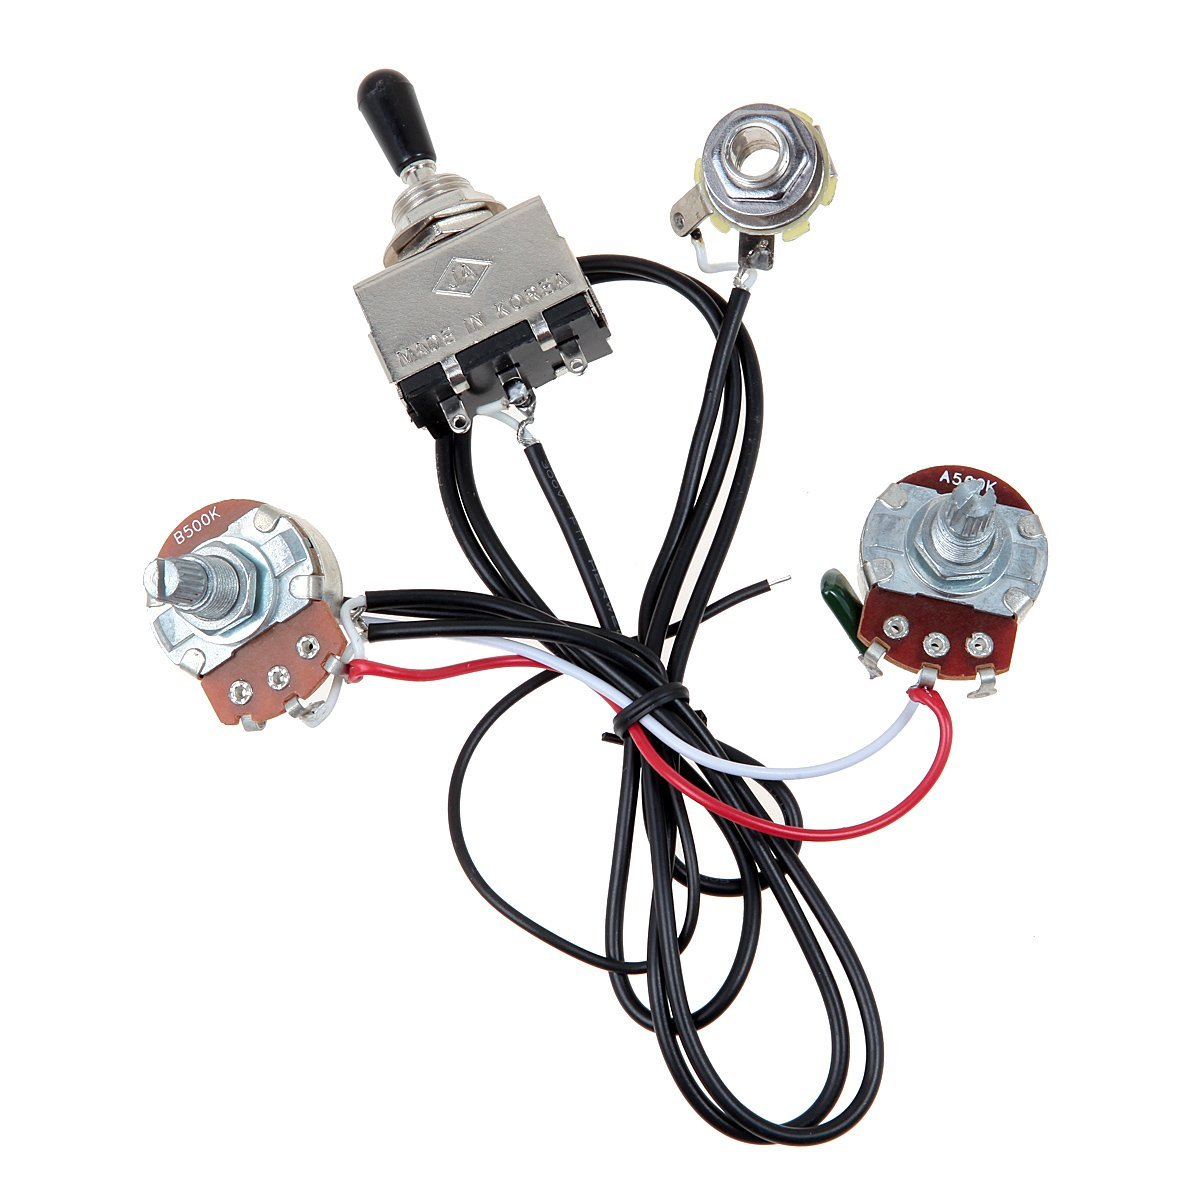 Guitar Wiring Harness Prewired Two Pickup 500k Pots 3 Way Toggle A Switch Silver In Parts Accessories From Sports Entertainment On